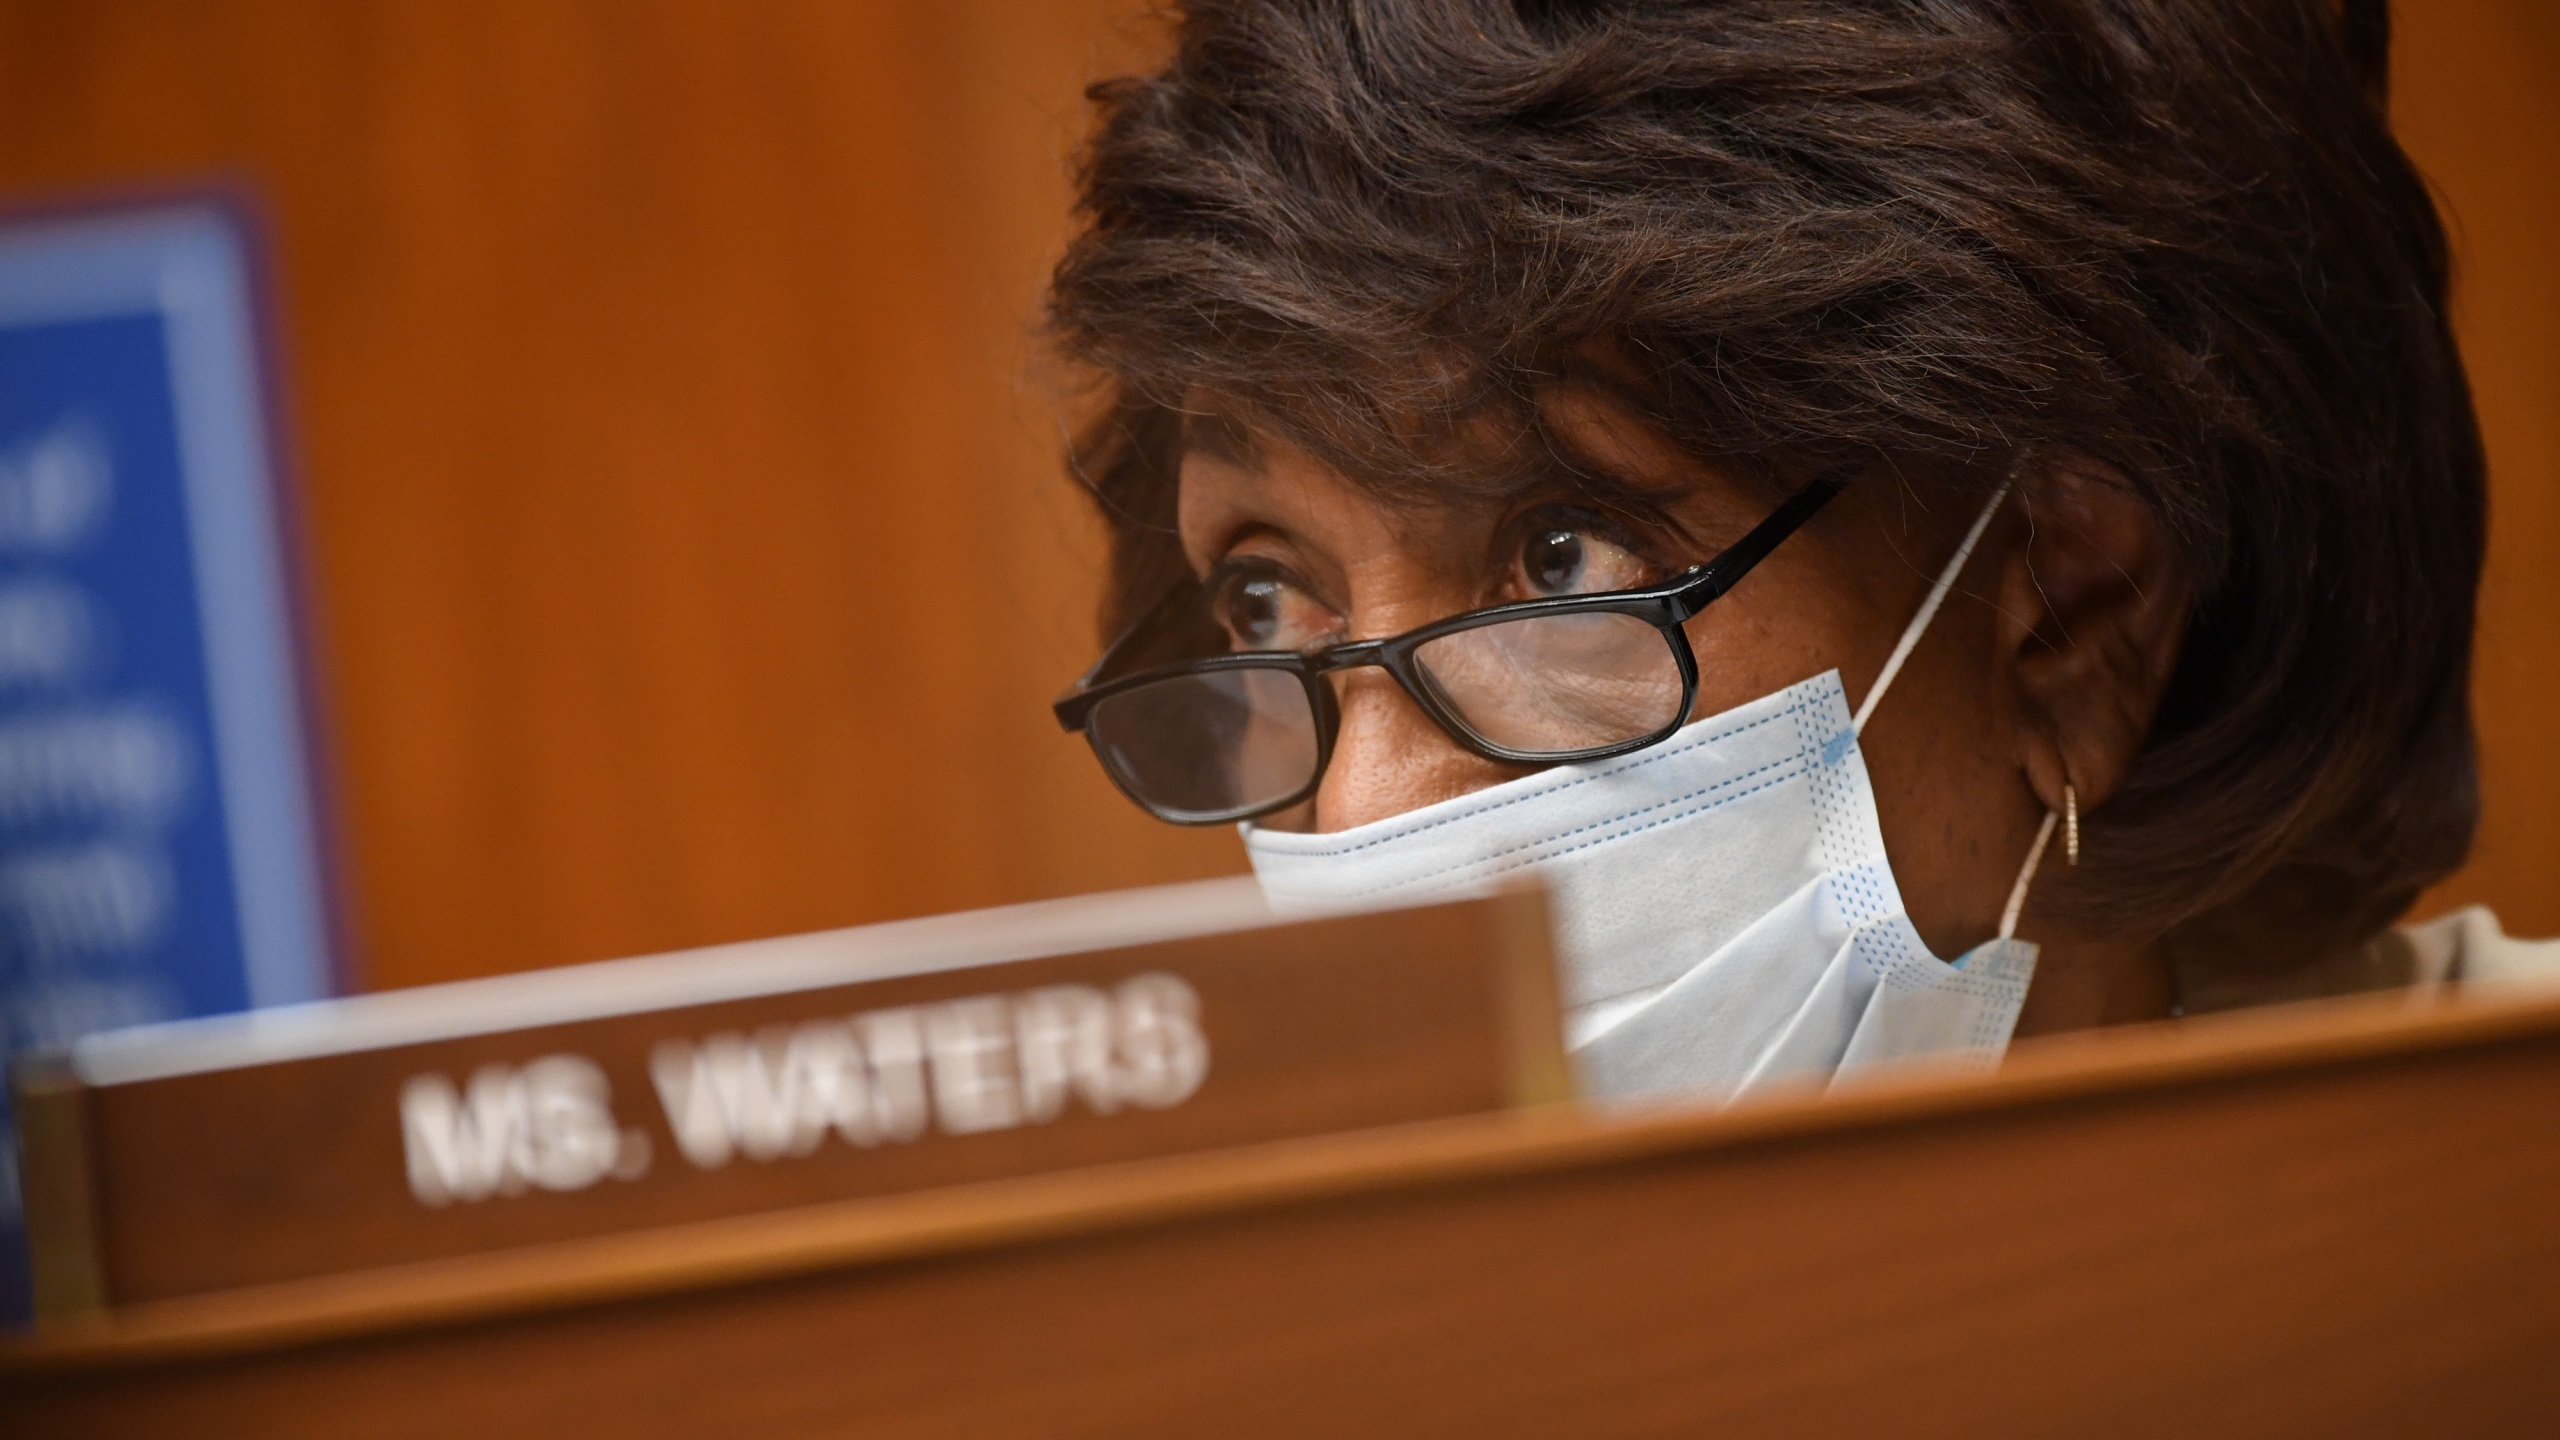 Rep. Maxine Waters (D-CA) listens to testimony during a House Subcommittee on the Coronavirus Crisis hearing on Capitol Hill on July 31, 2020 in Washington, D.C. (Kevin Dietsch-Pool/Getty Images)